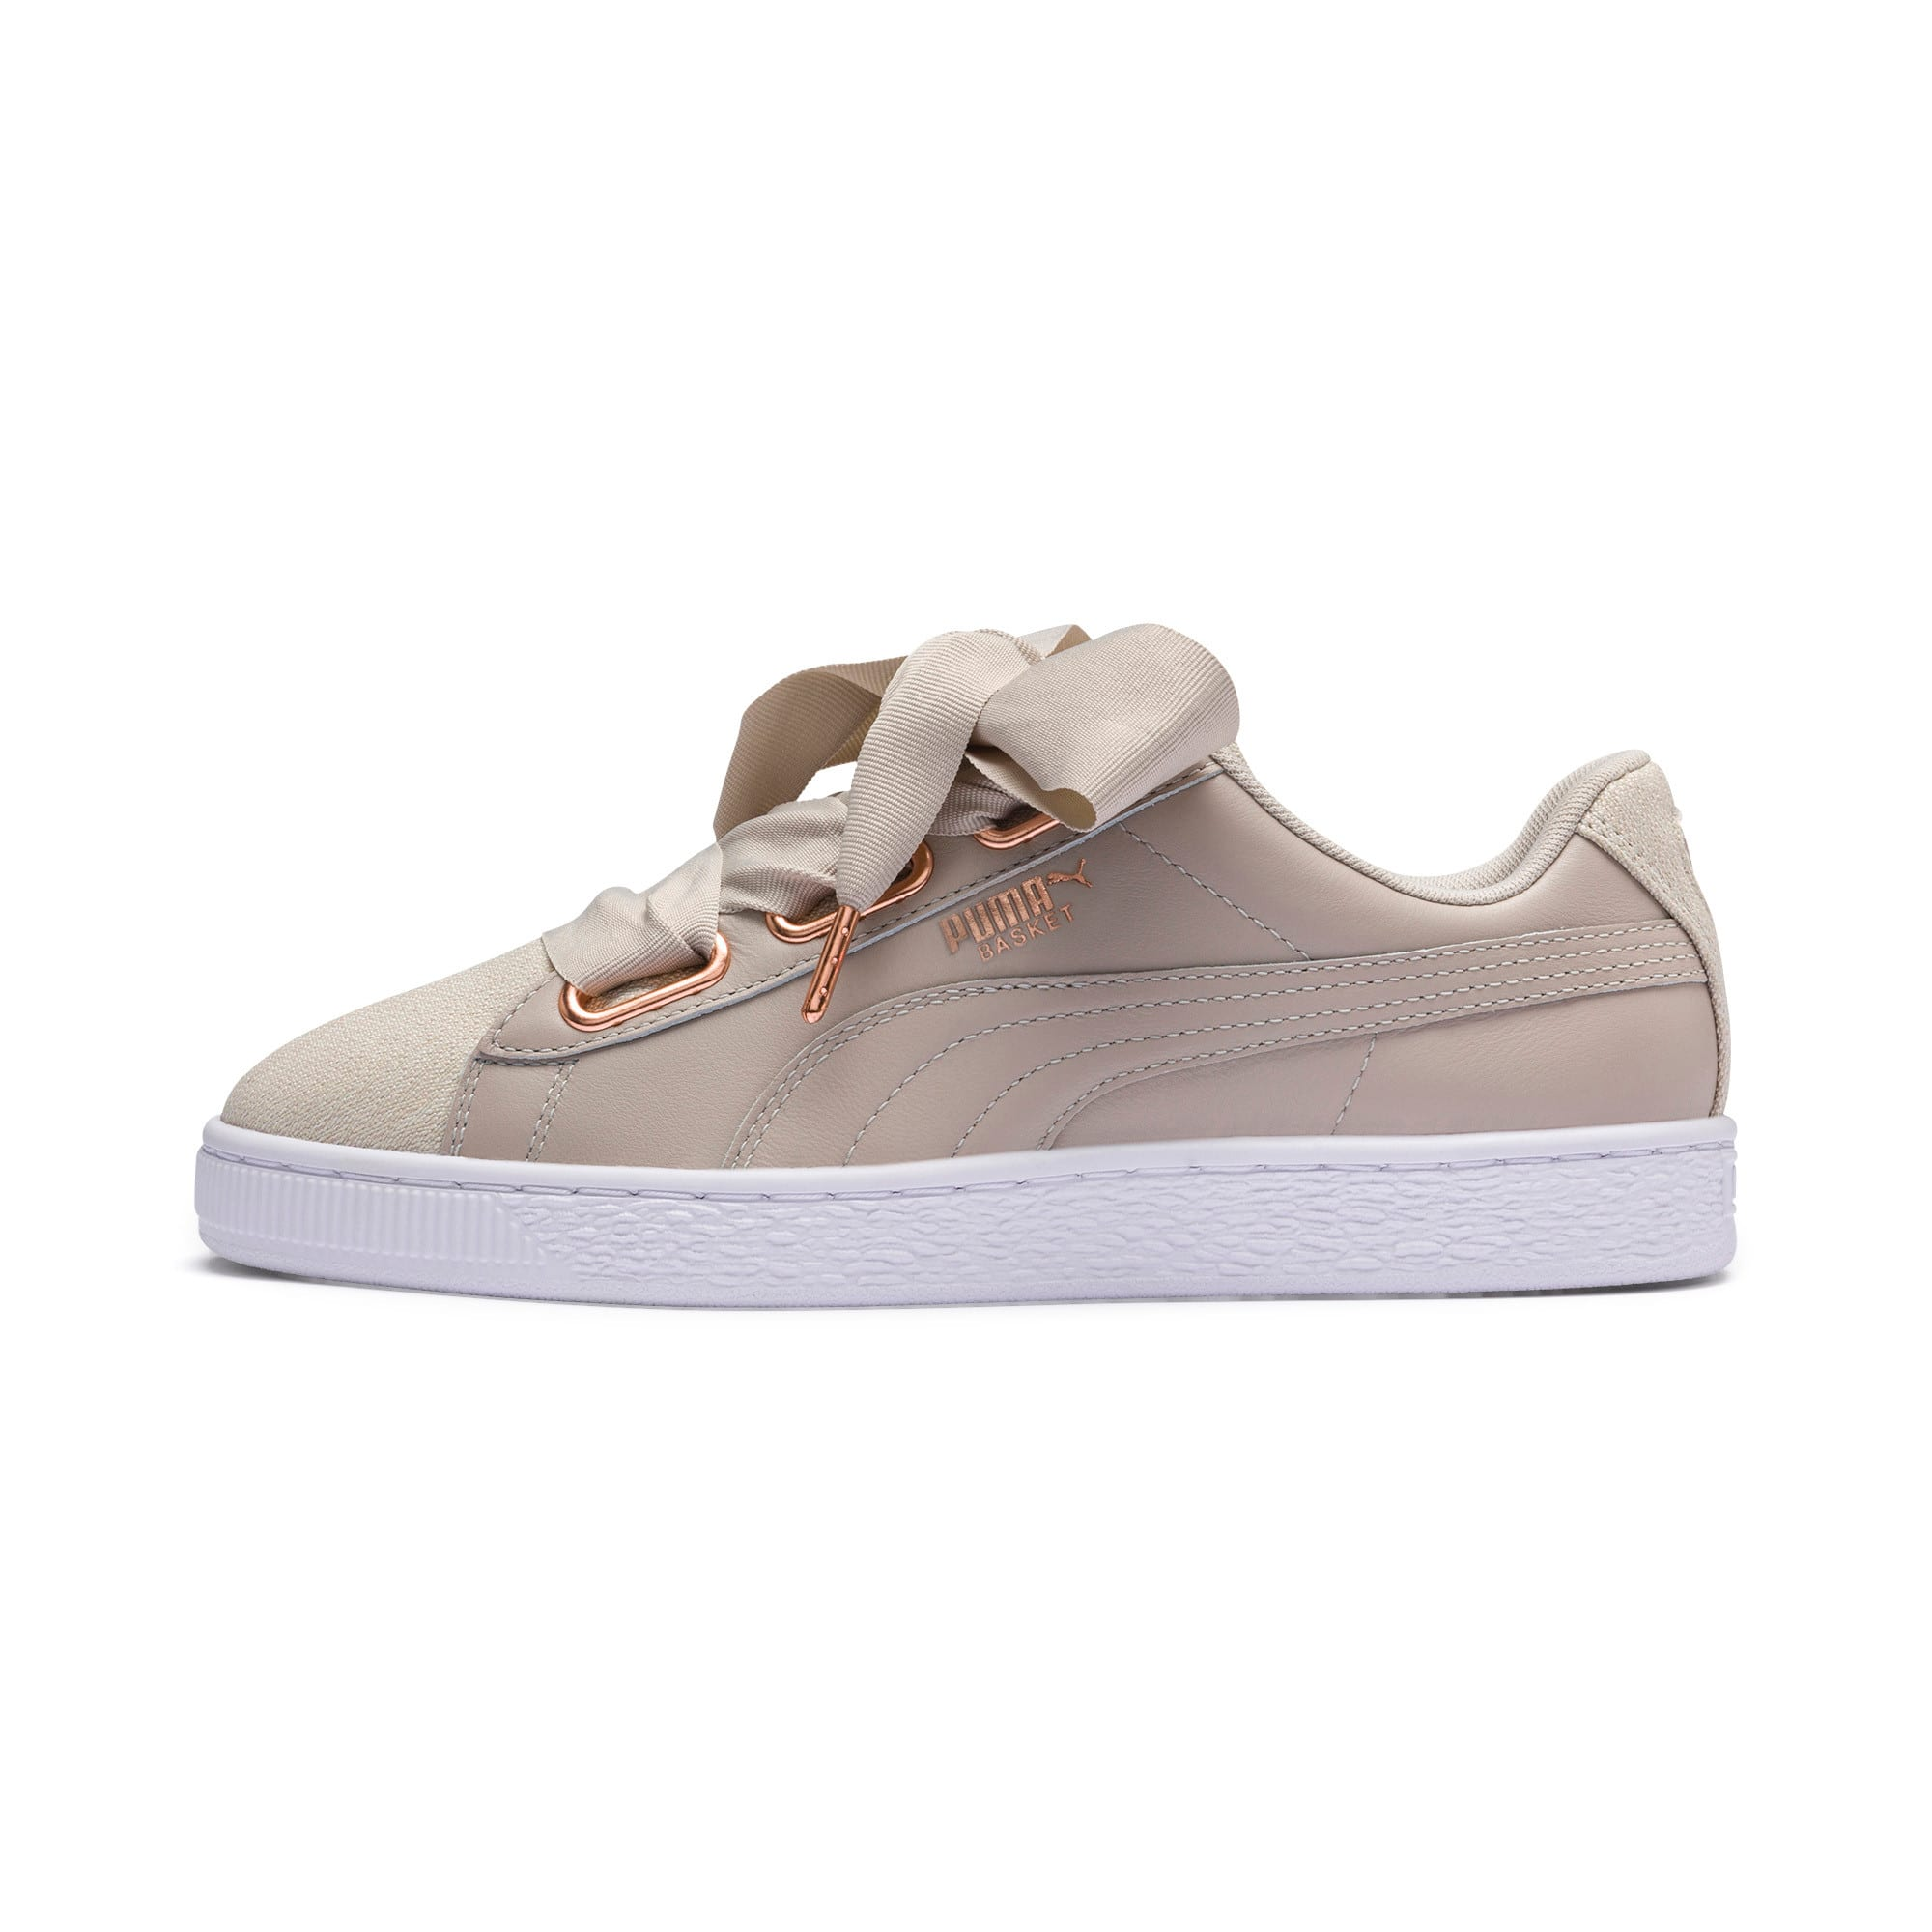 Thumbnail 1 of Basket Heart Woven Rose Women's Sneakers, Silver Gray-Puma White, medium